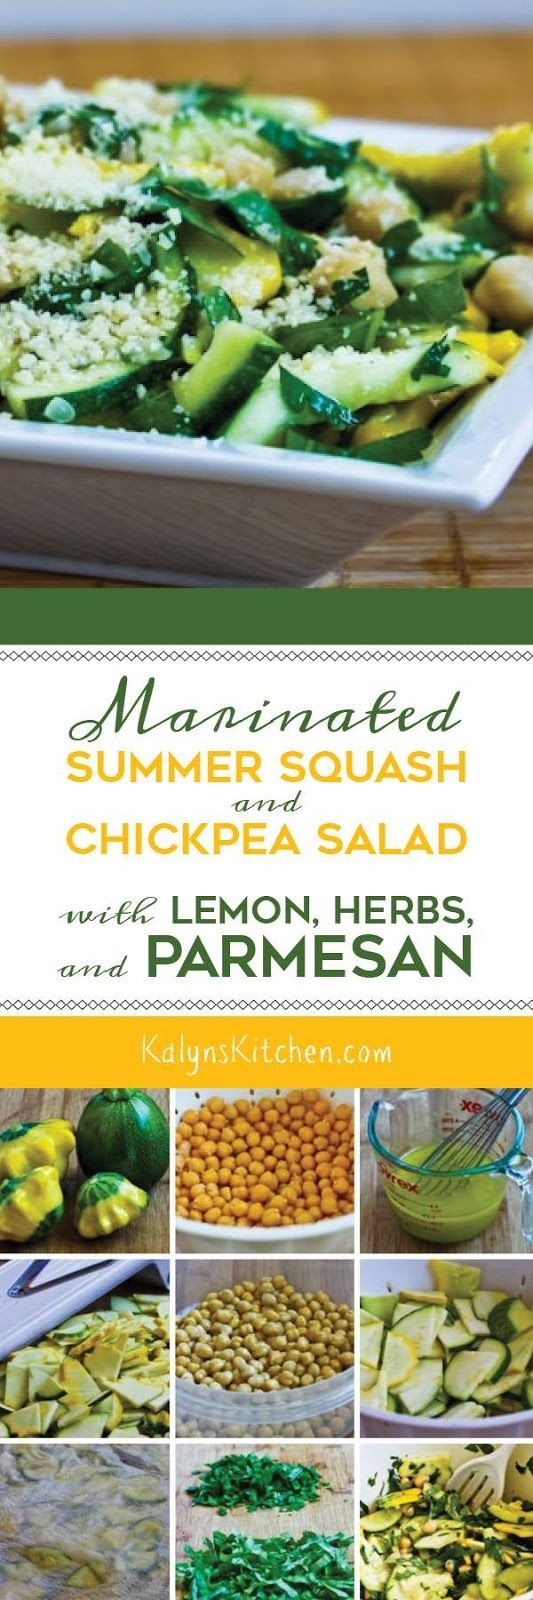 Marinated Summer Squash and Chickpea Salad with Lemon, Herbs, and Parmesan is a delicious low-glycemic salad made with raw summer squash. This tasty salad is also meatless and South Beach Diet friendly! [found on KalynsKitchen.com]